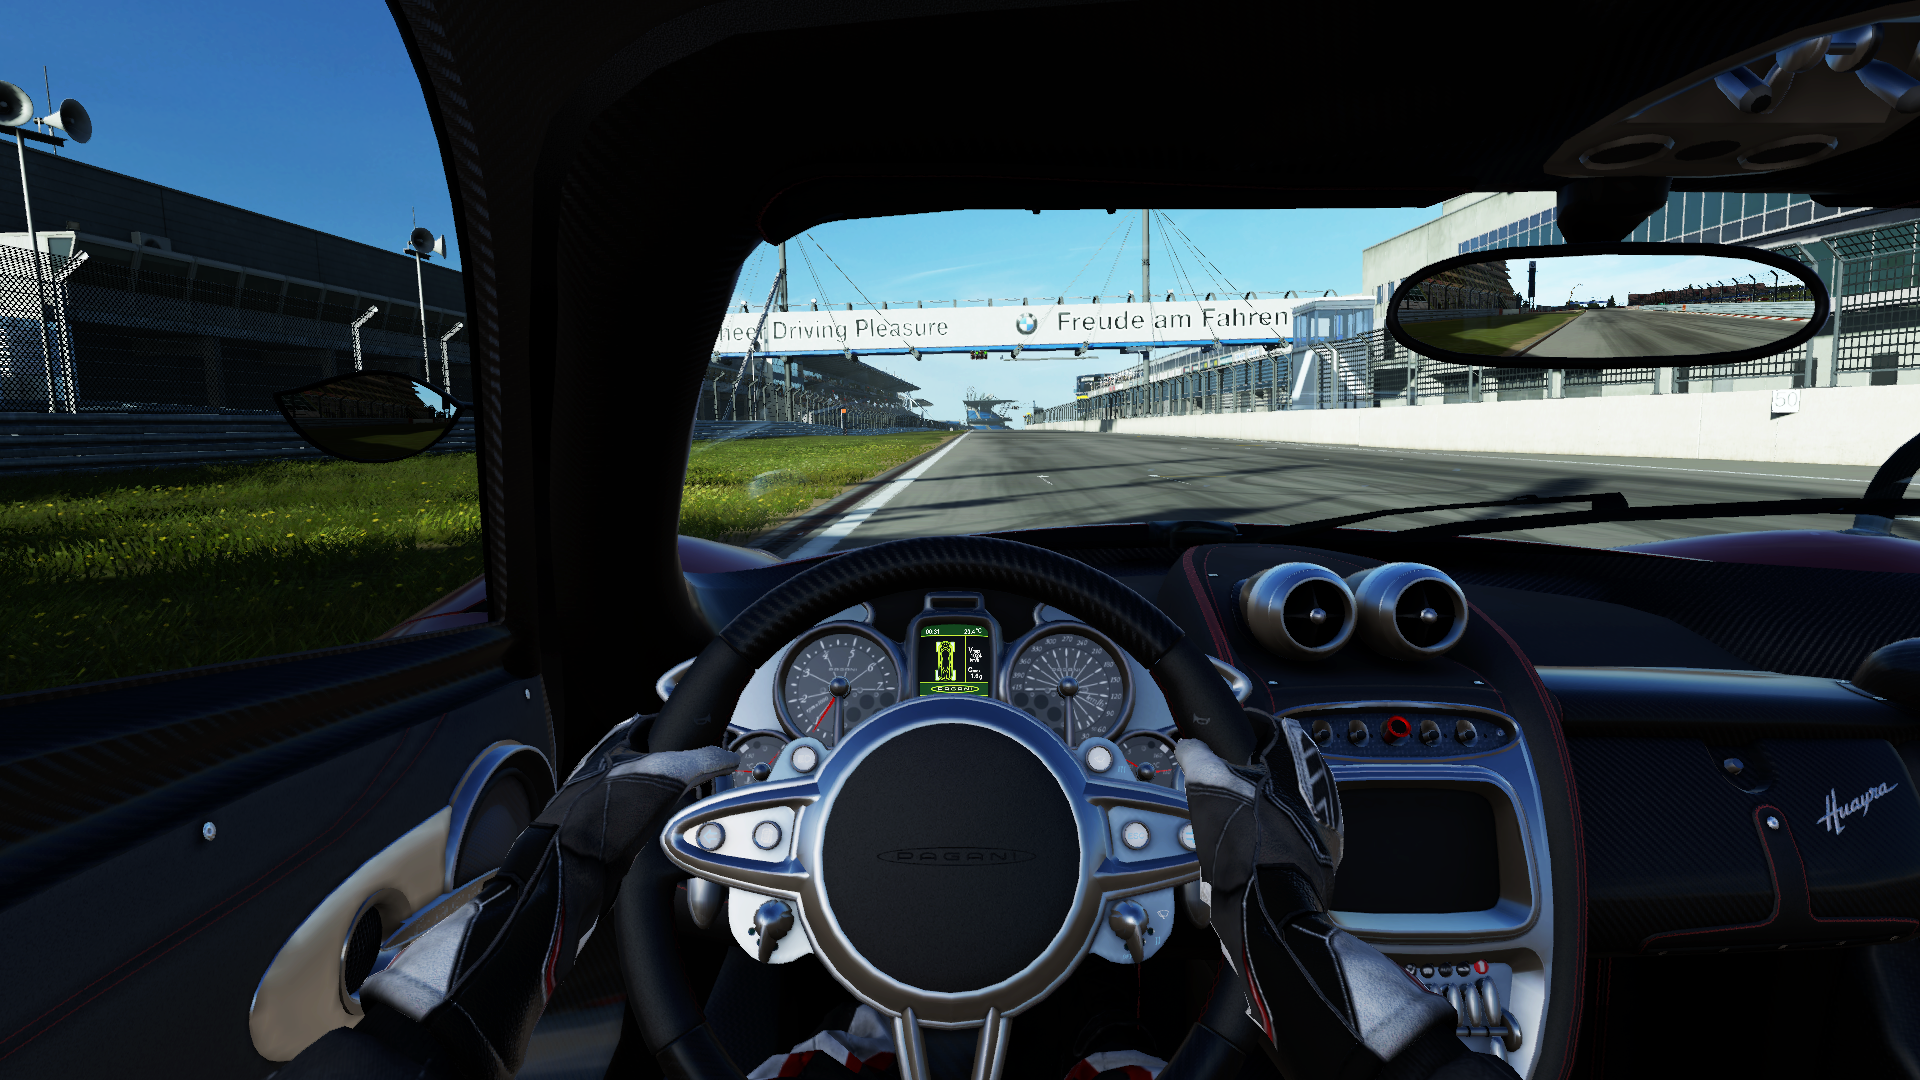 Can I Request A Project Cars Cockpit View Of The Pagani Huayra On Either Platform Something Like This Gameplay Please